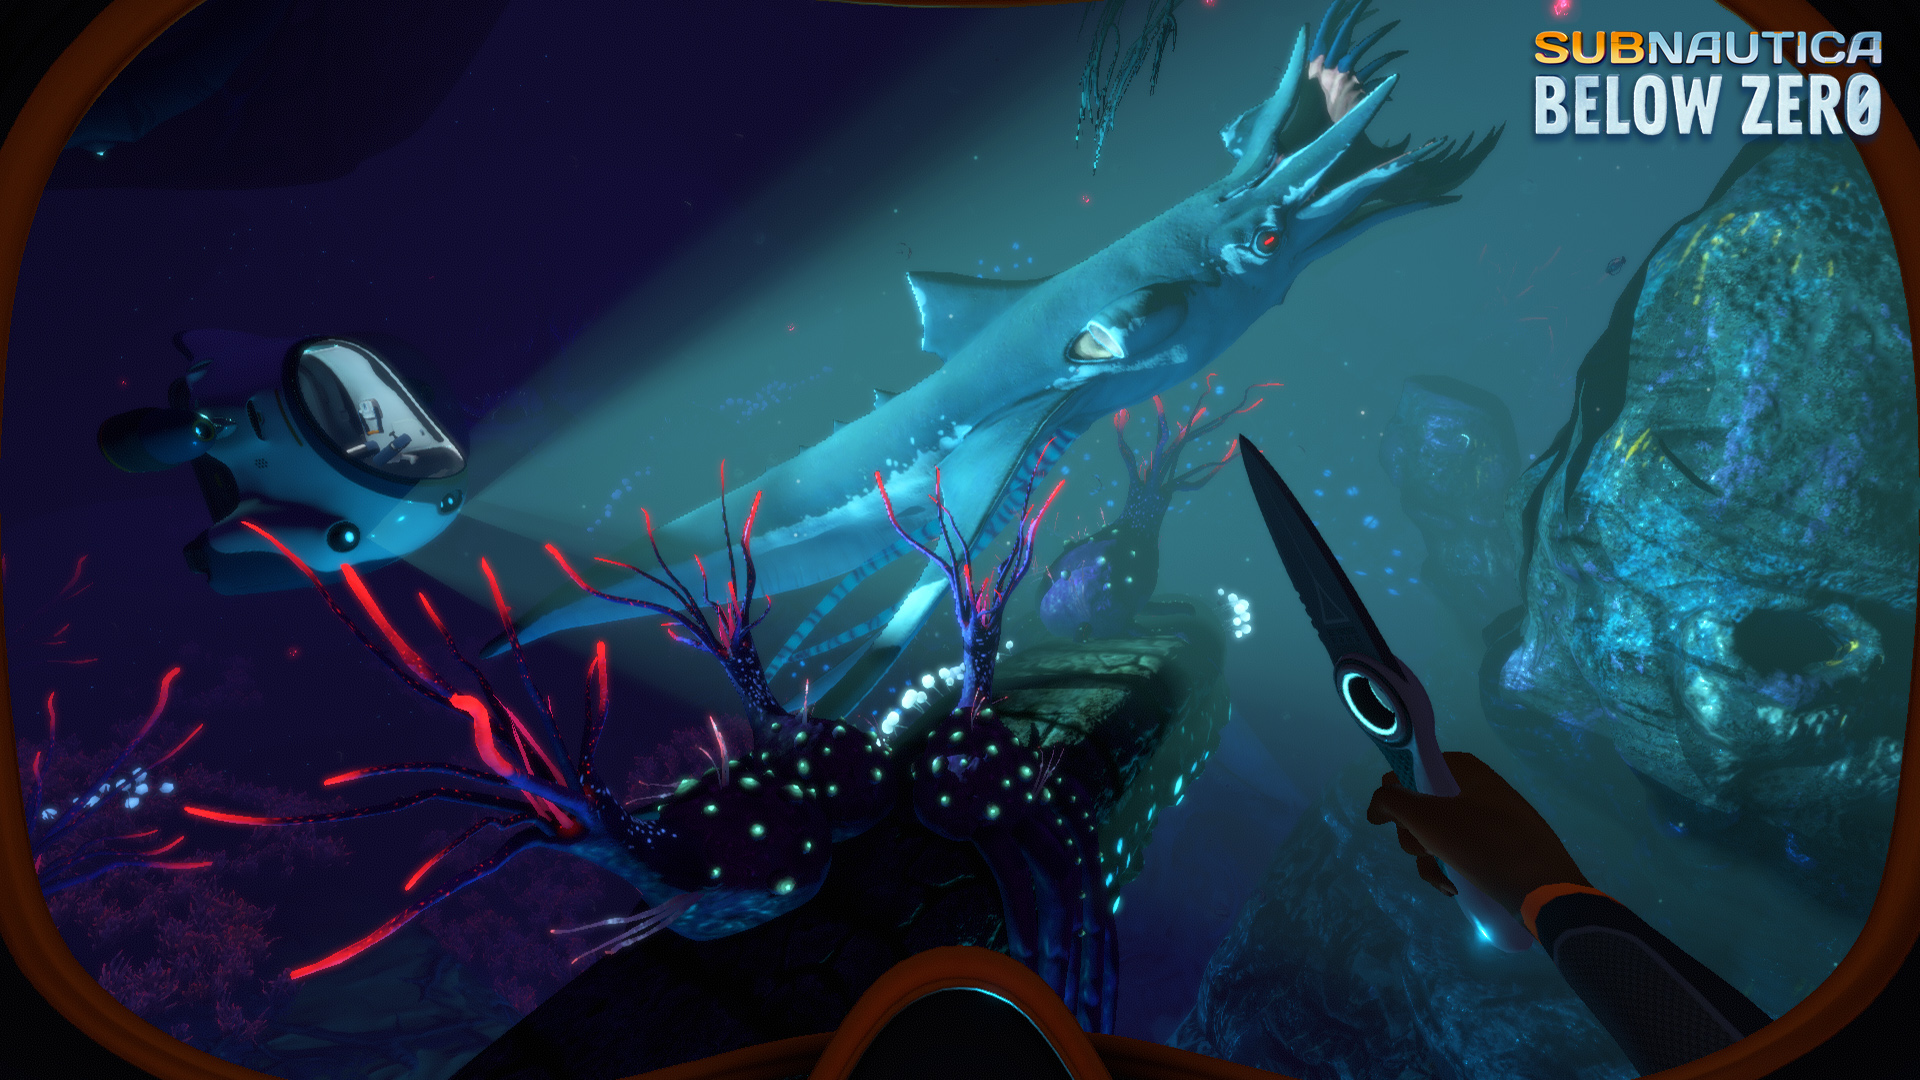 Subnautica: Below Zero in the preview - of icy expanses and penglings